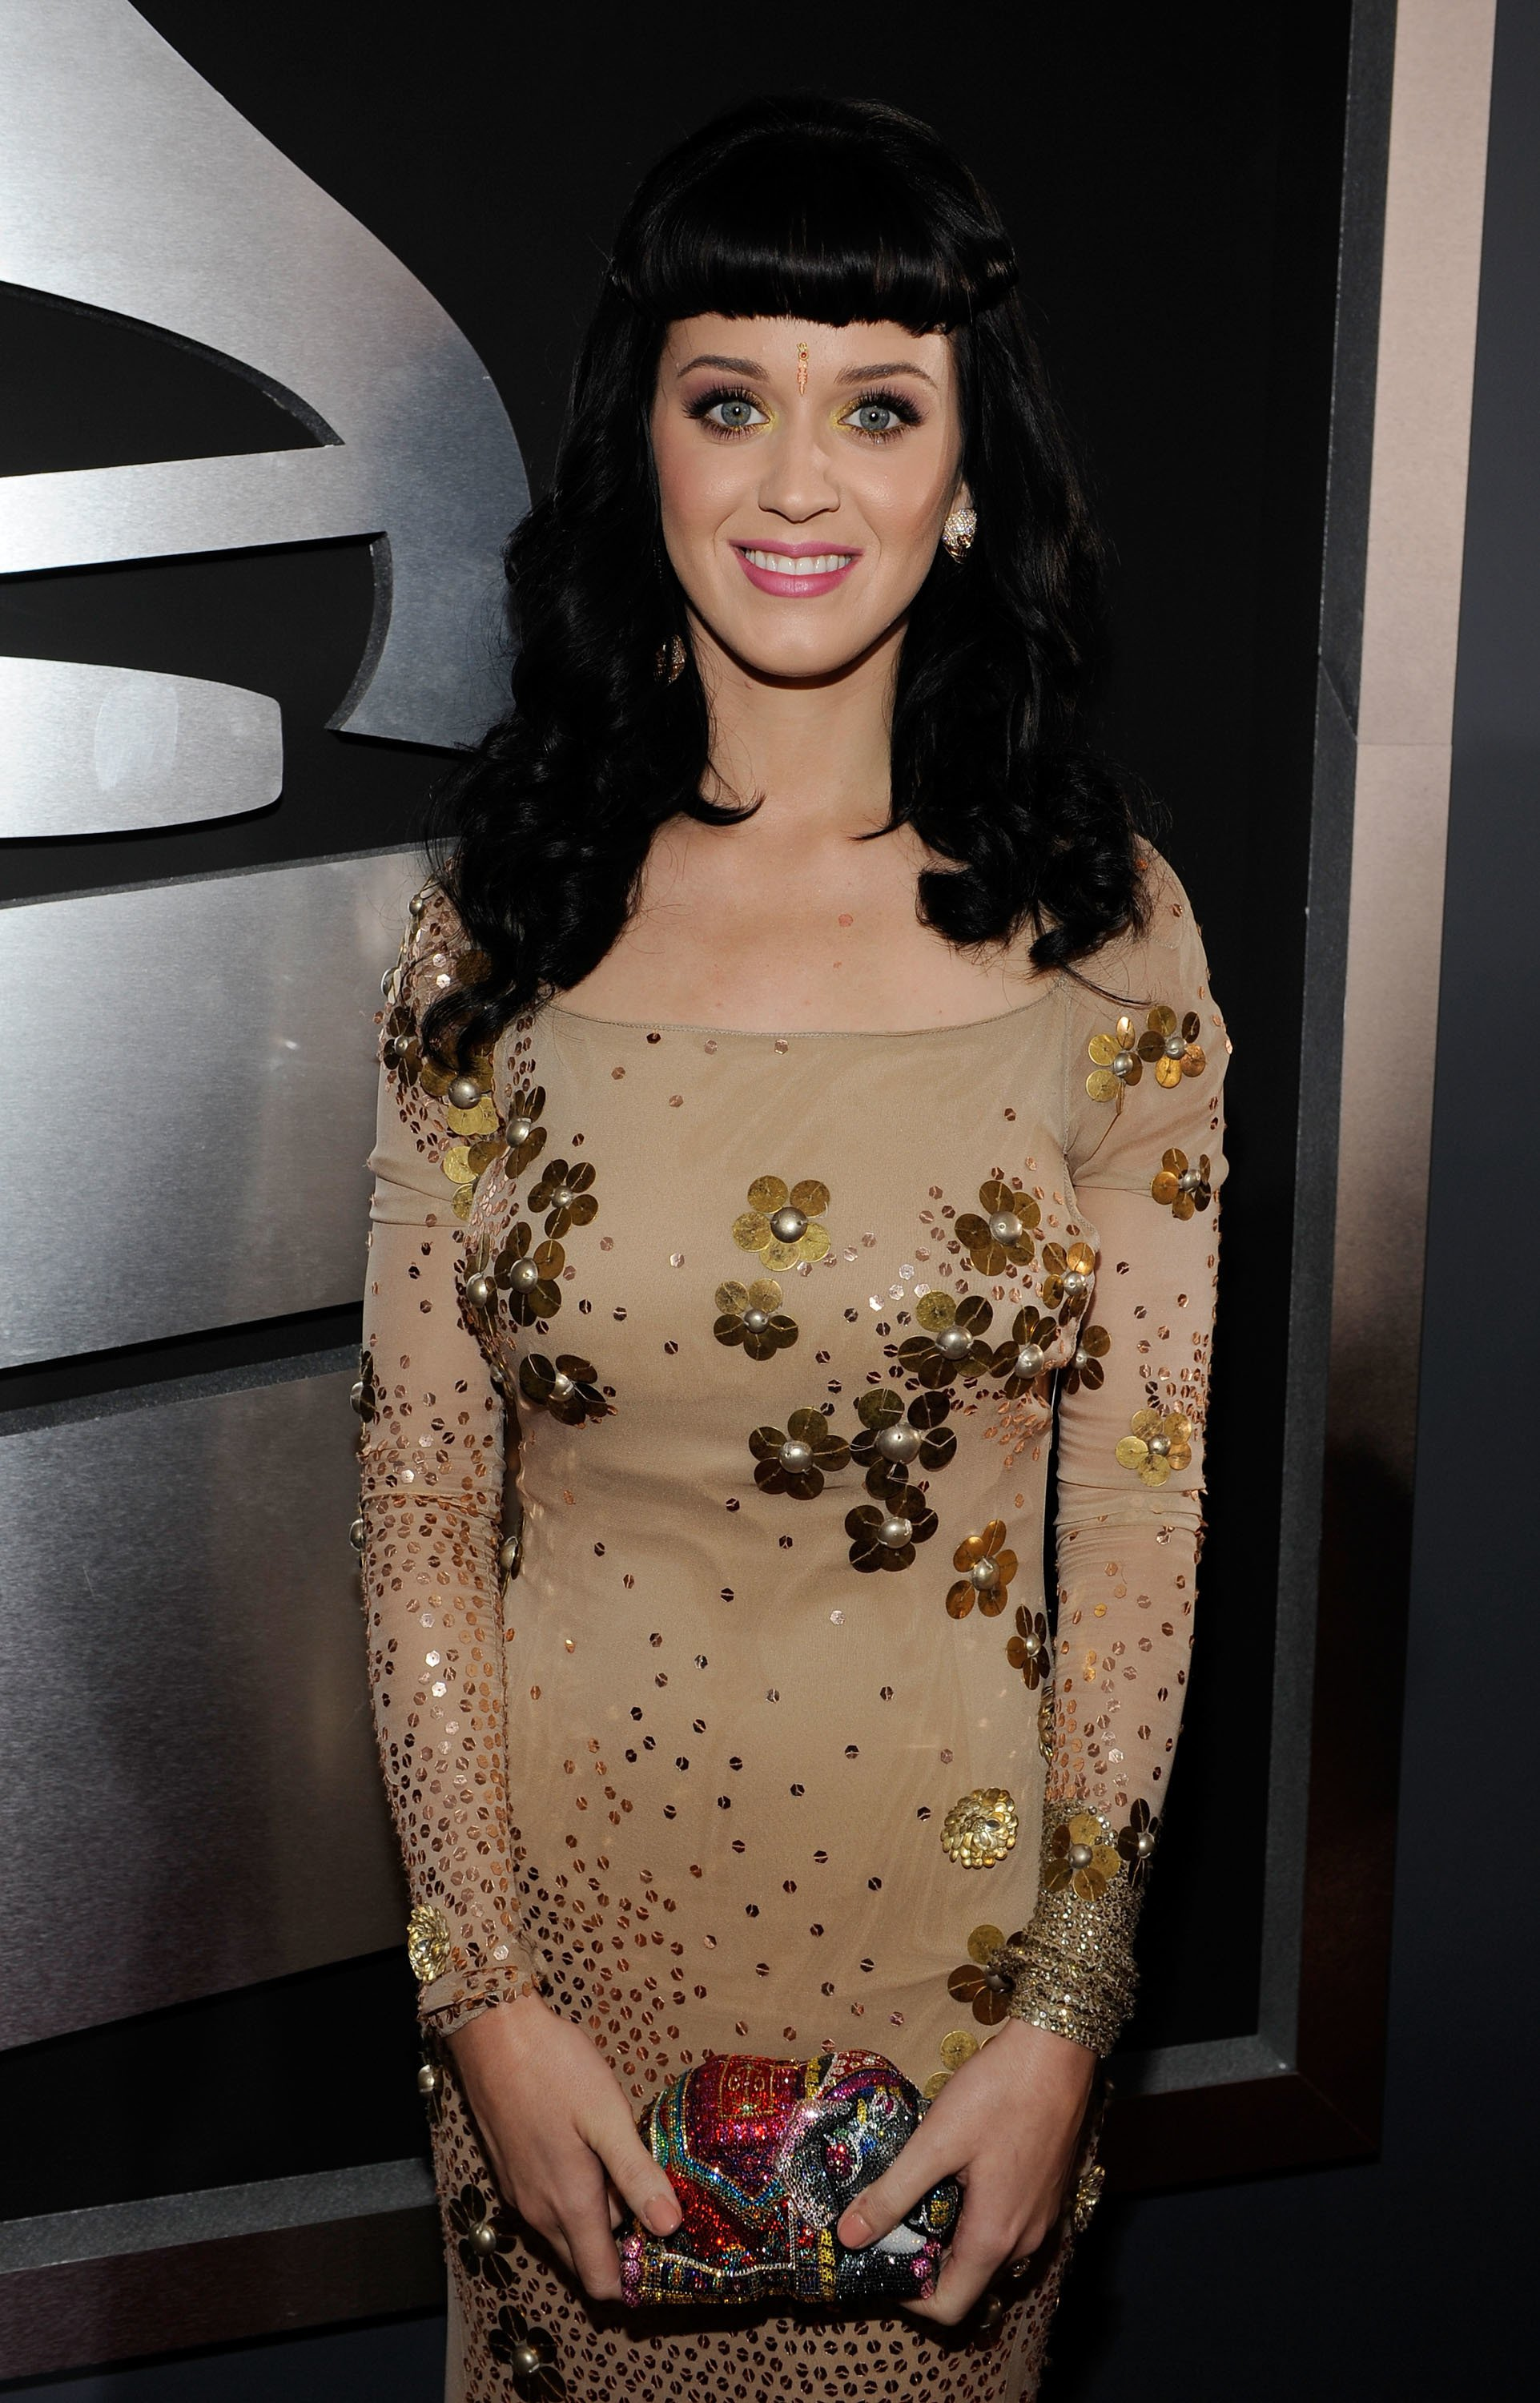 Katy Perry at the 52nd Annual GRAMMY Awards on January 31, 2010 in Los Angeles, California | Photo: Getty Images